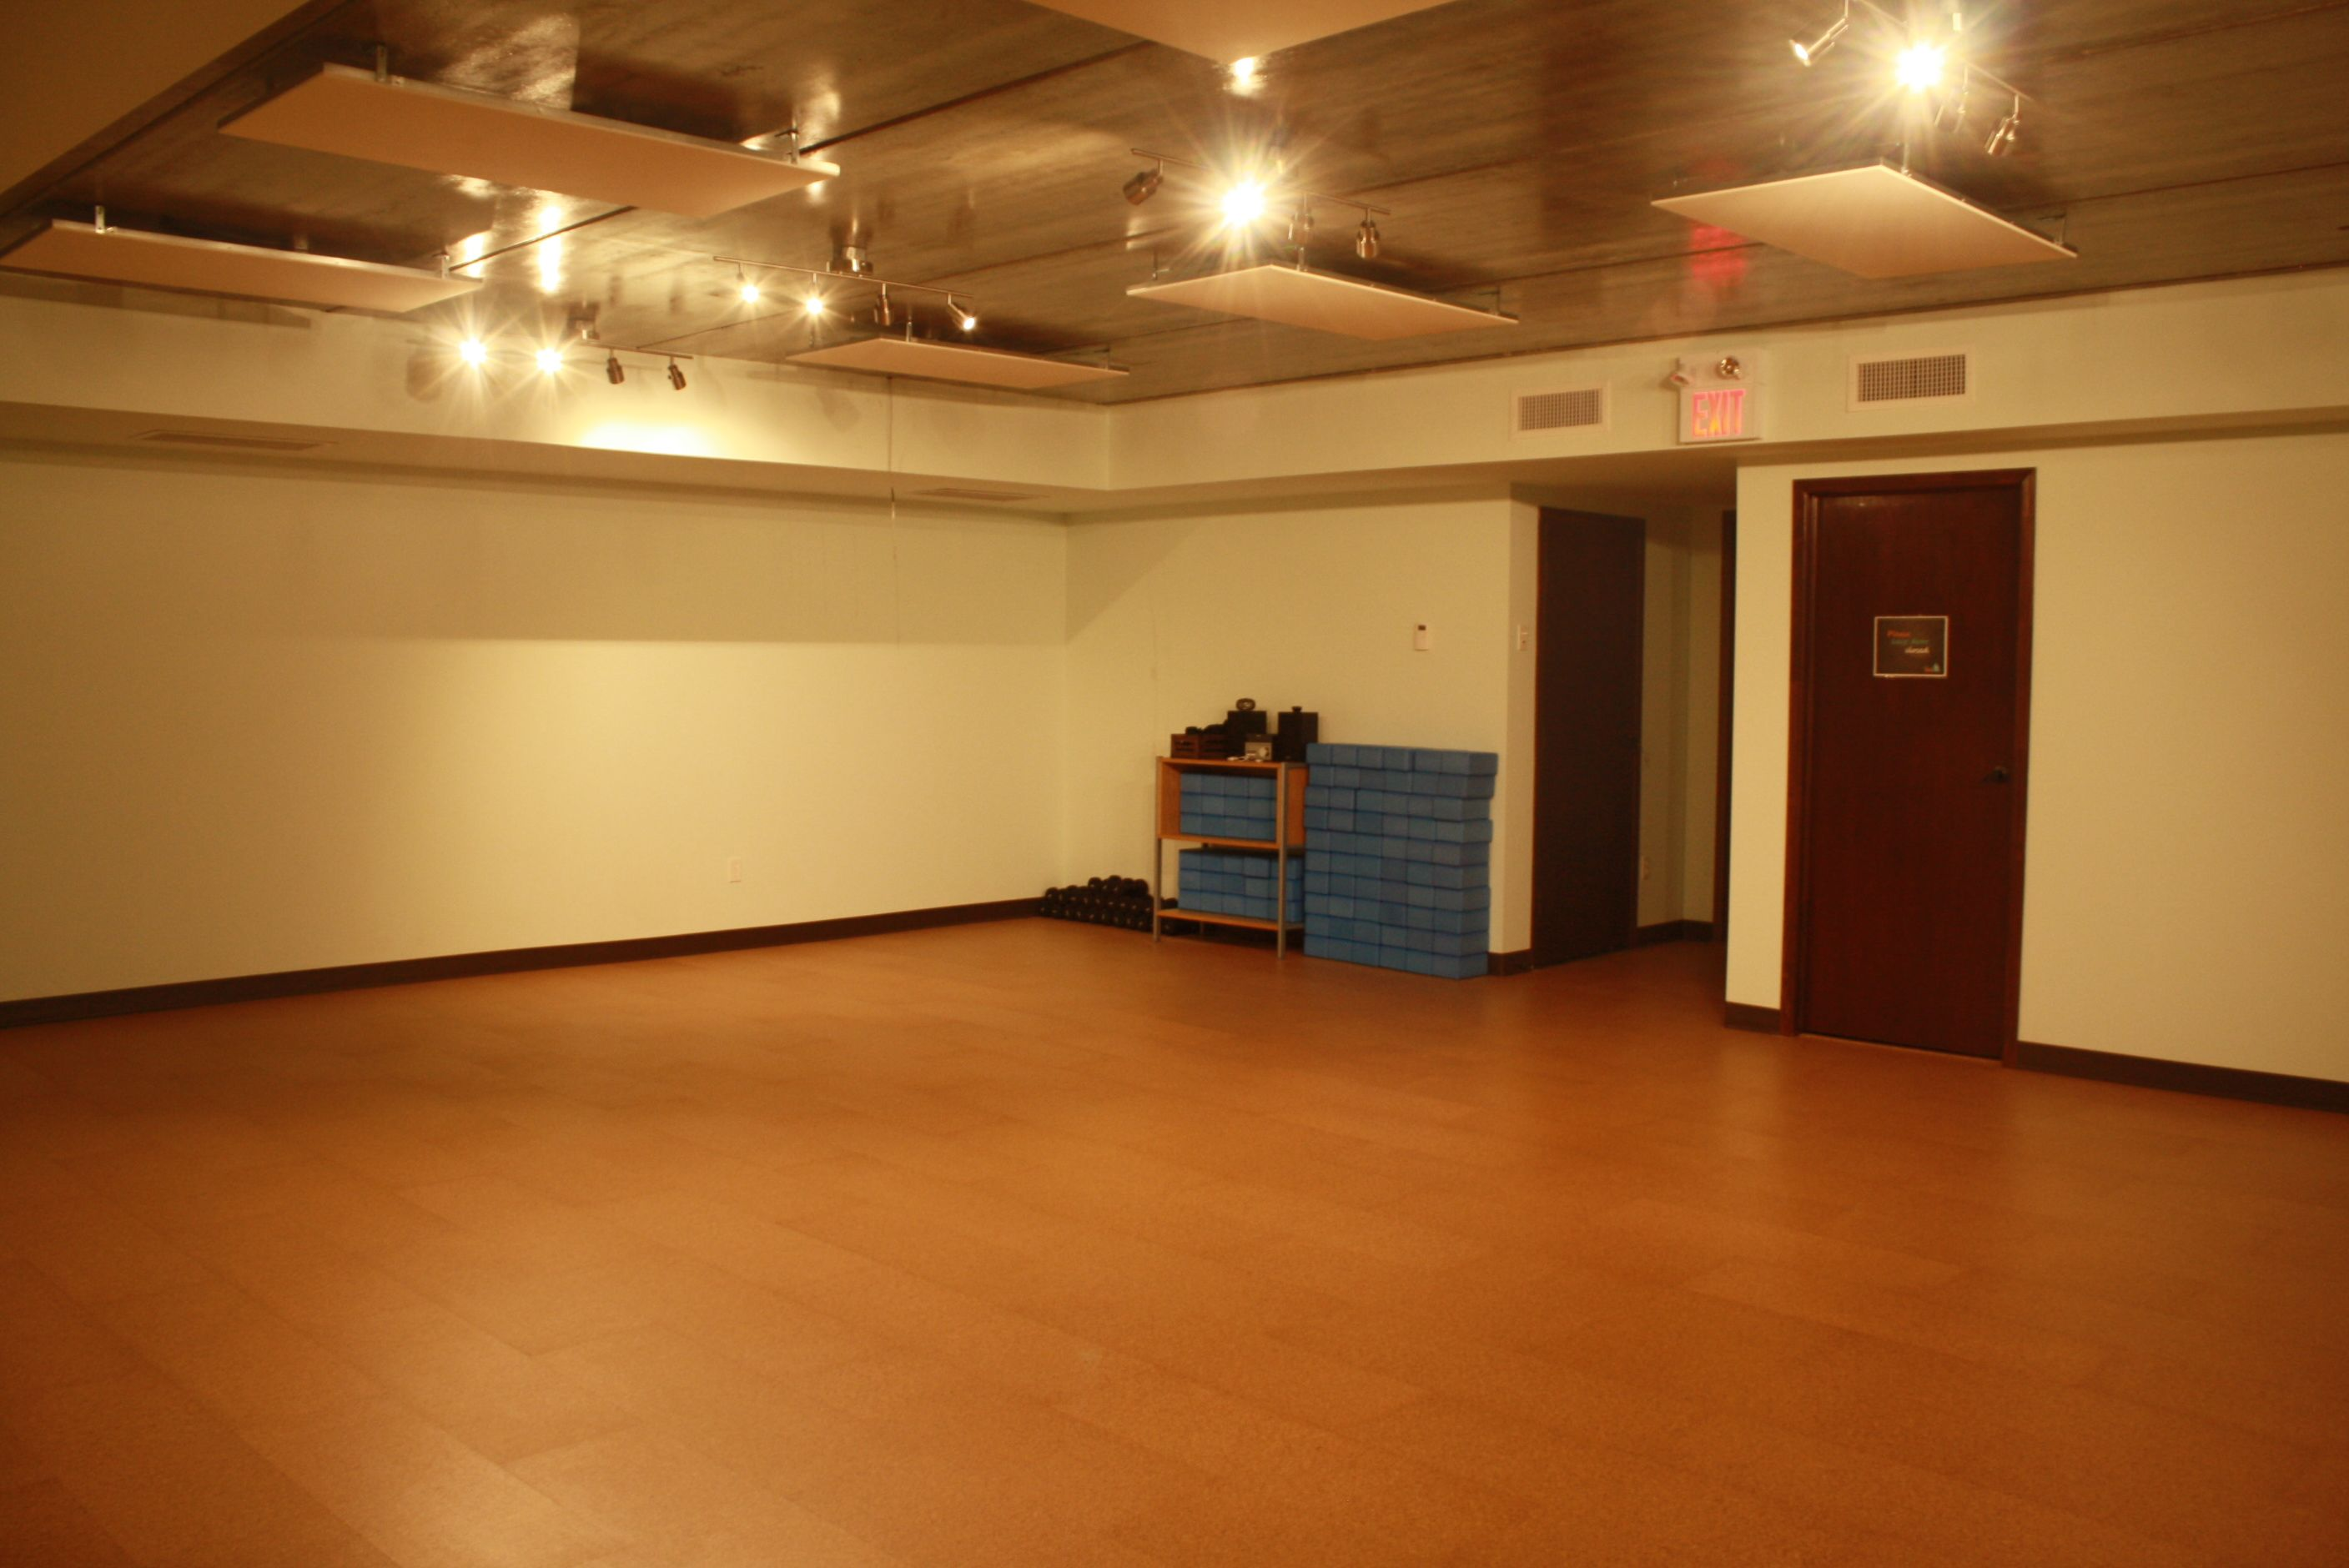 Fußboden Ideen Yoga ~ Hot yoga infrared heat and radiant flooring brings a nice dry